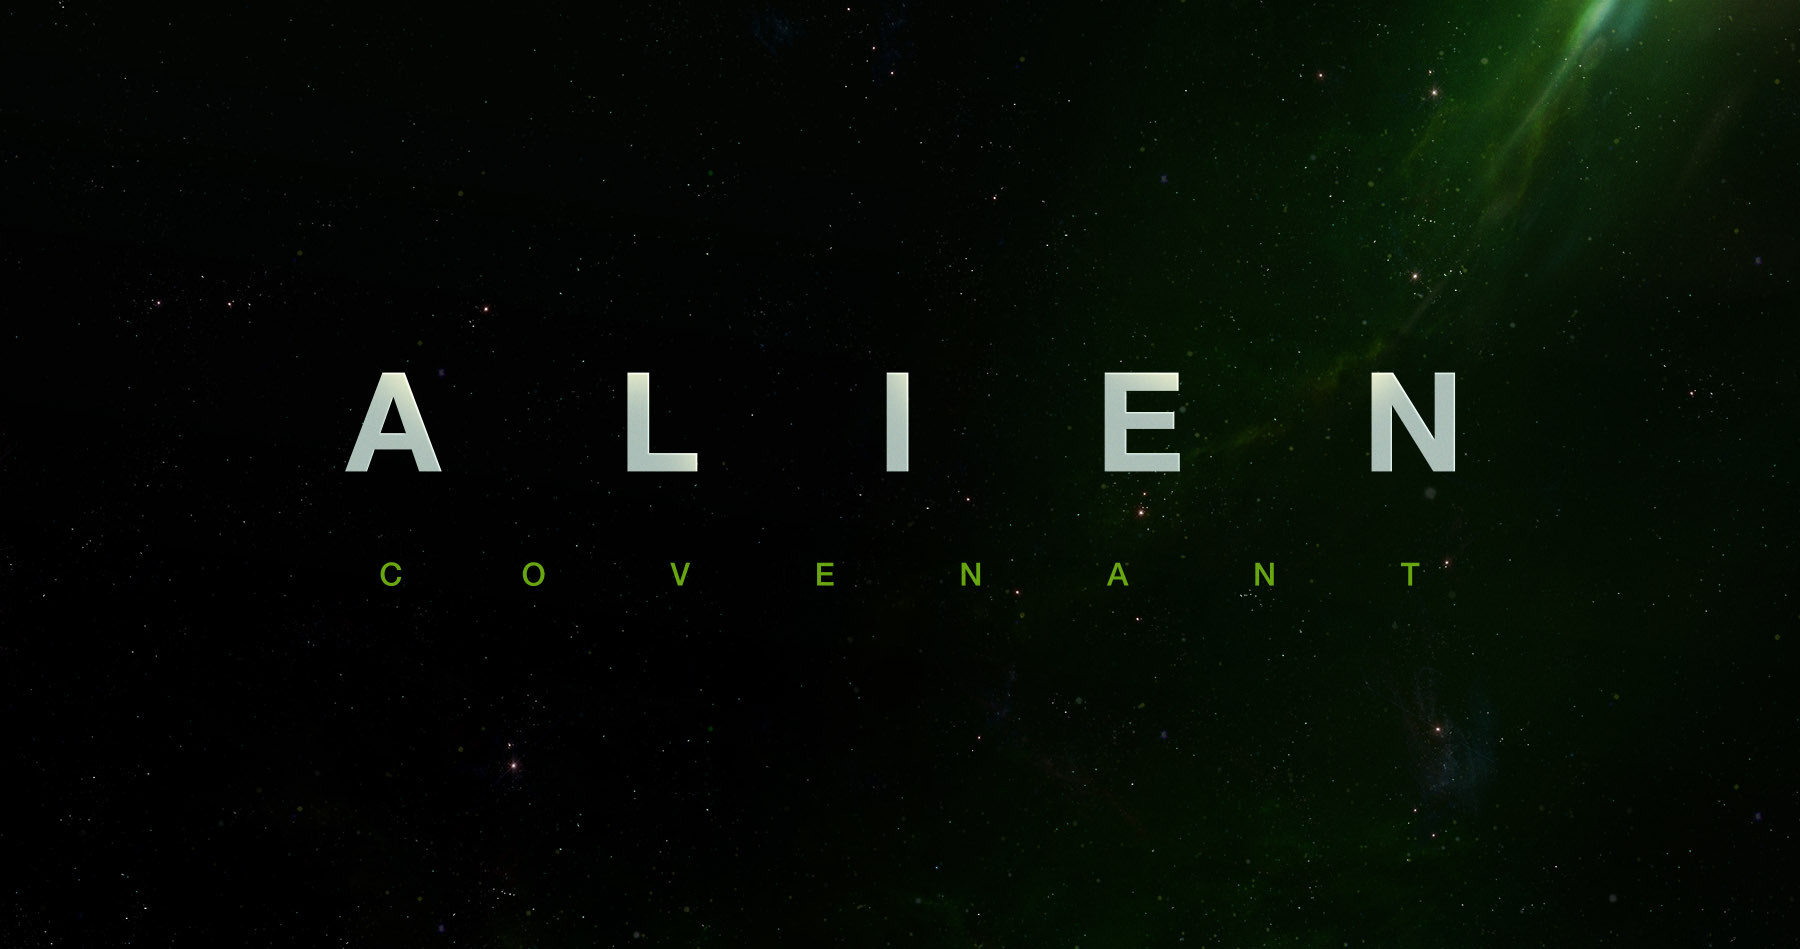 New Alien: Covenant Image Gives Us First Look At Female Lead Alien Covenant